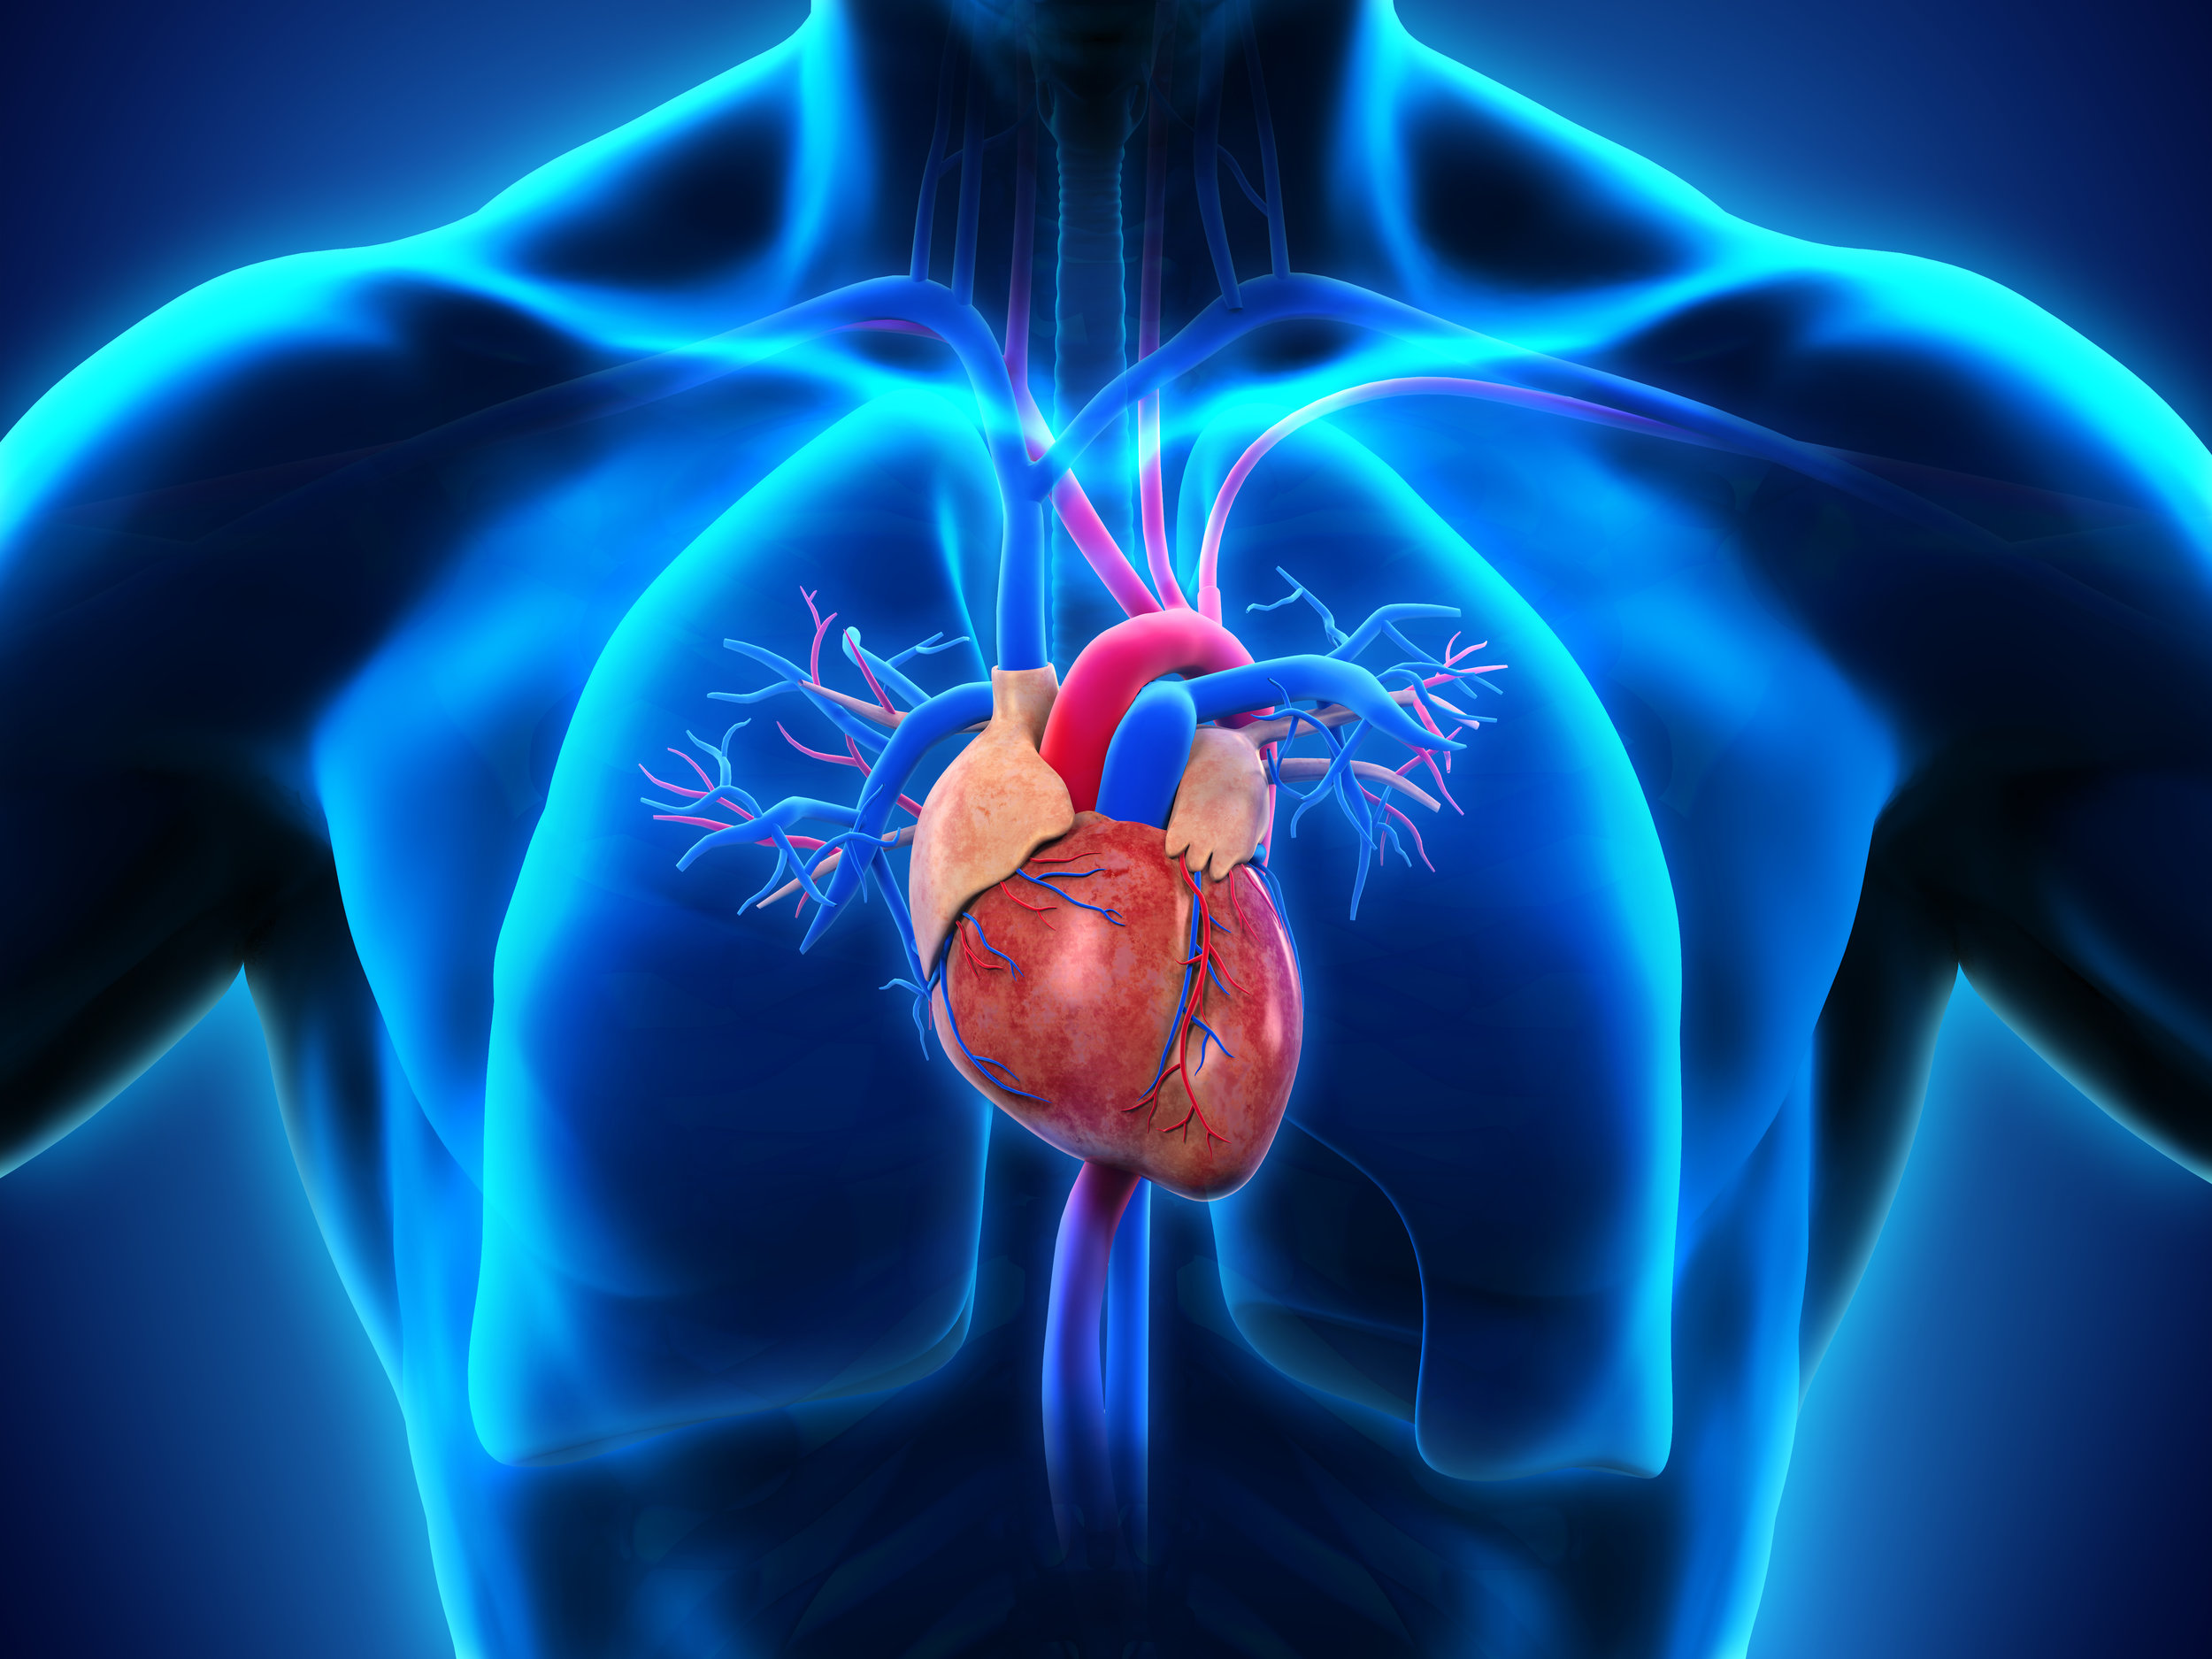 Heart & Lung Health